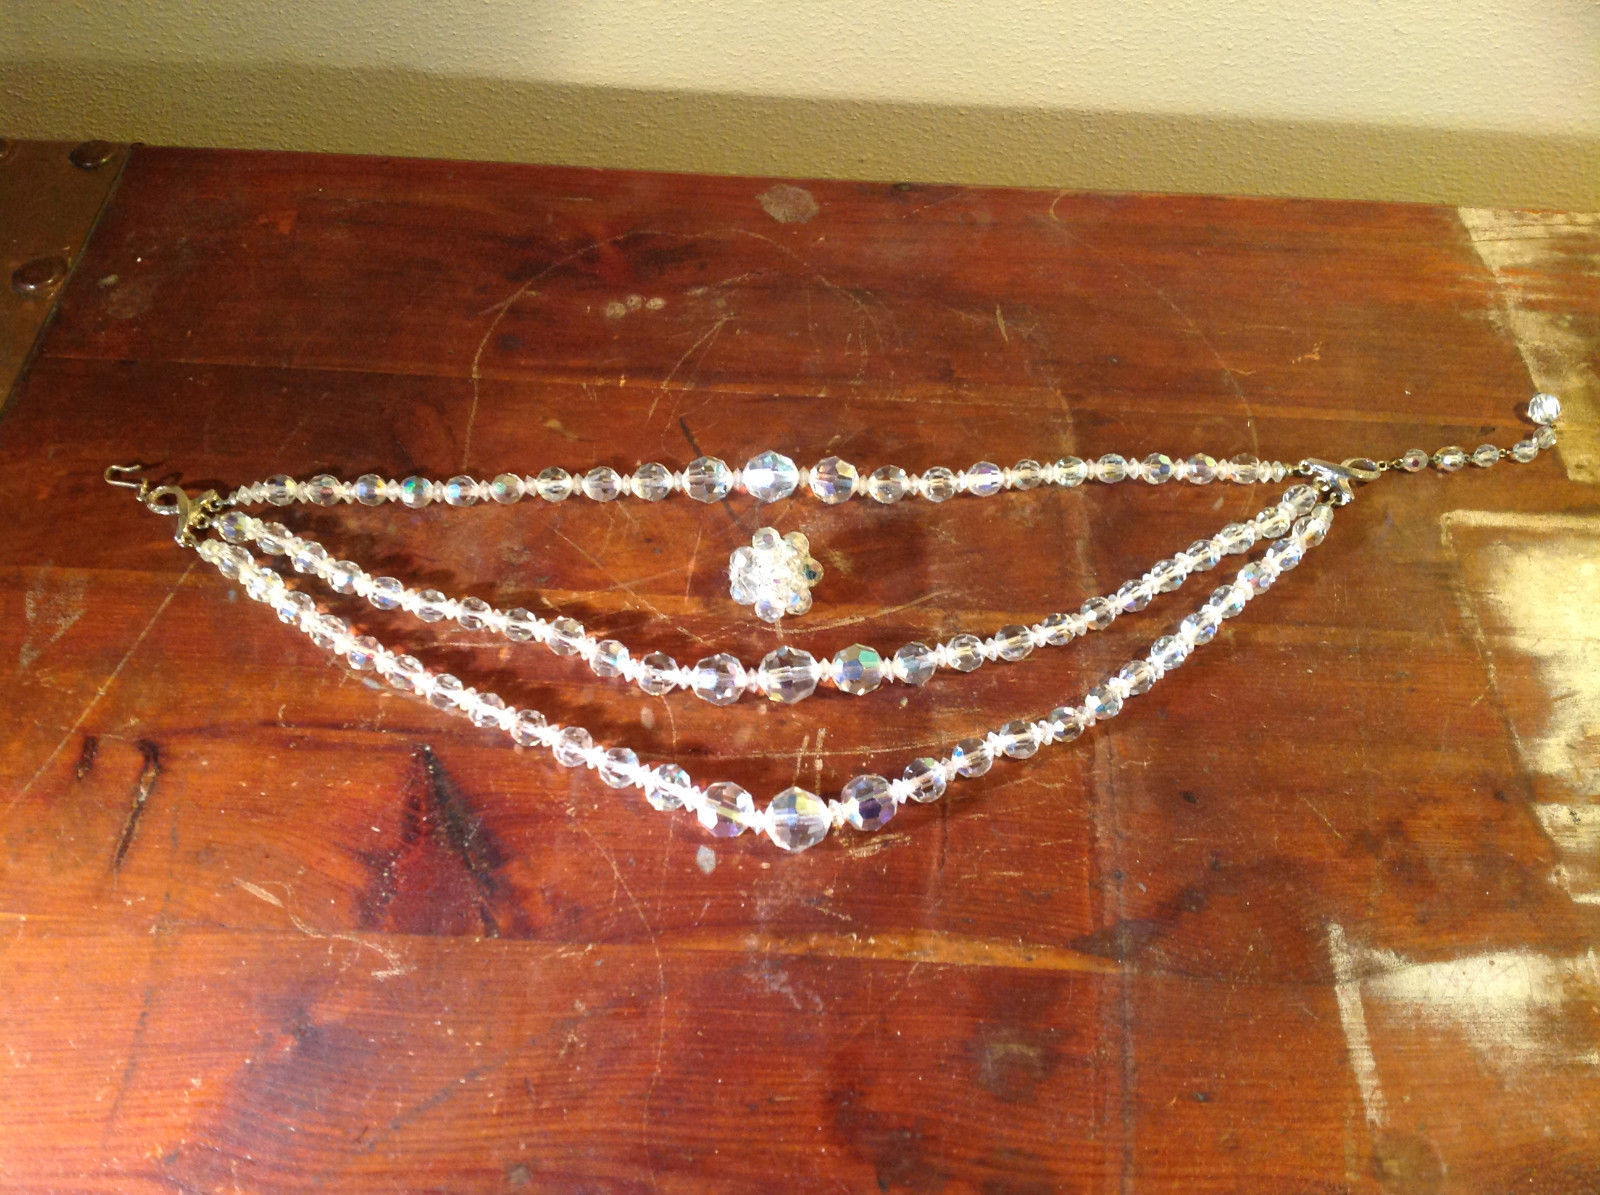 Two Piece Set including 3 Strand Necklace with Plastic Crystals and 1 Earring